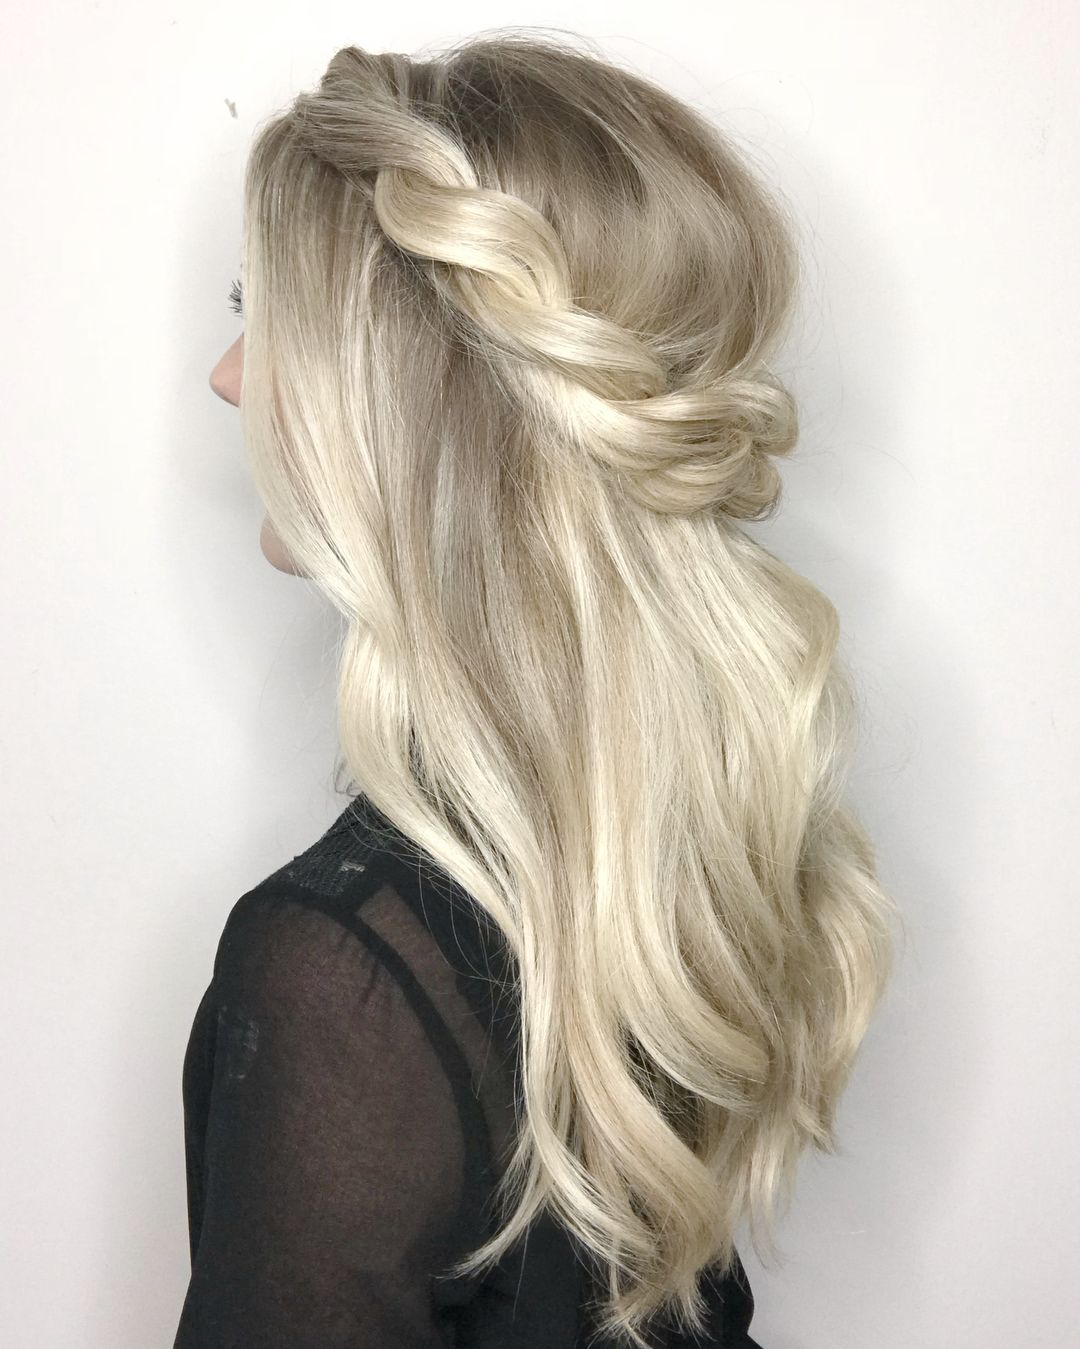 pin by hair and makeup by emily on my style | hair, bridal